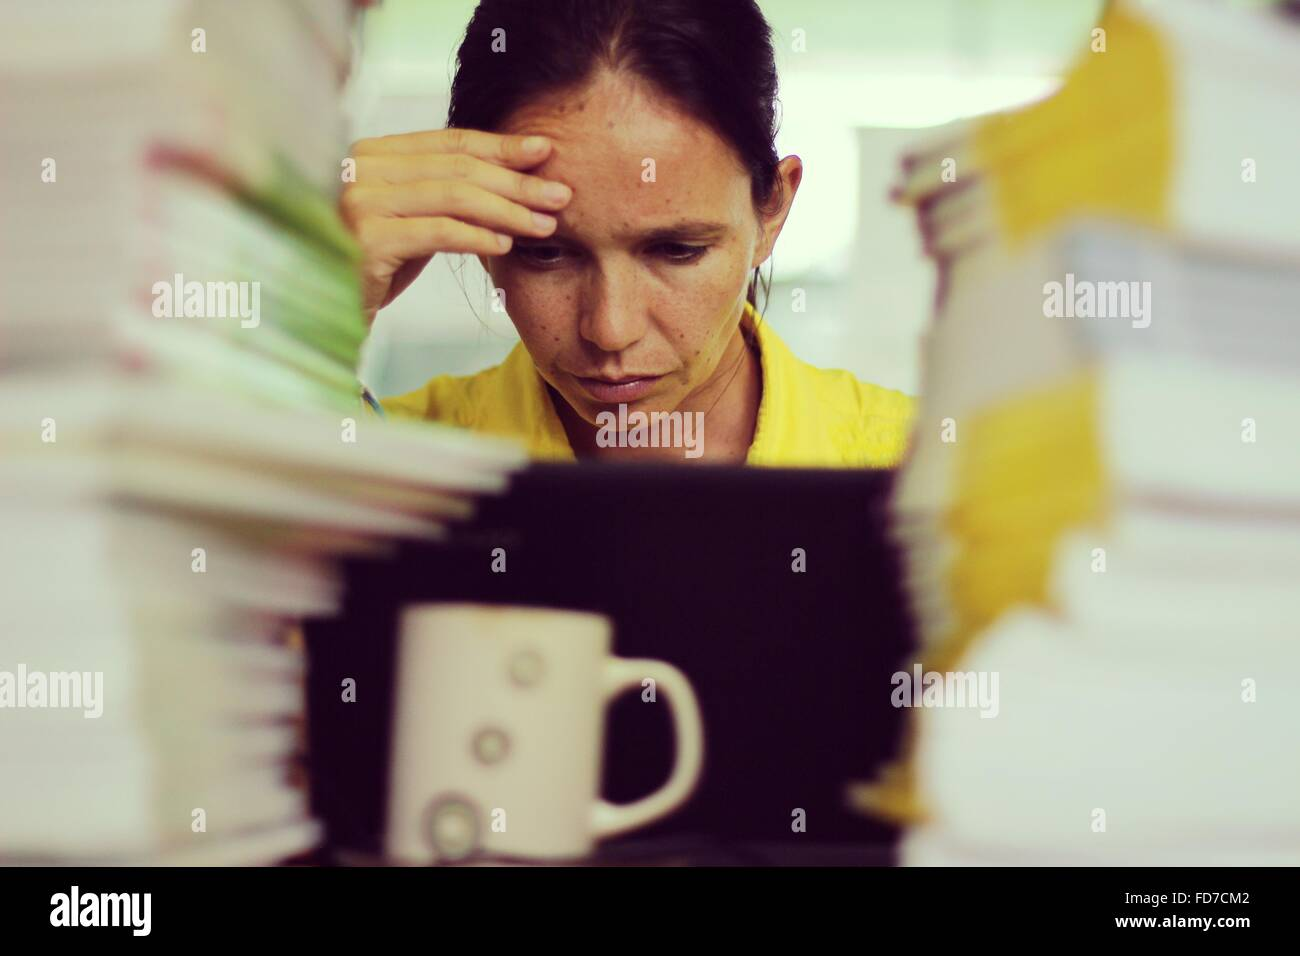 Stressful Woman Working In Office Stock Photo